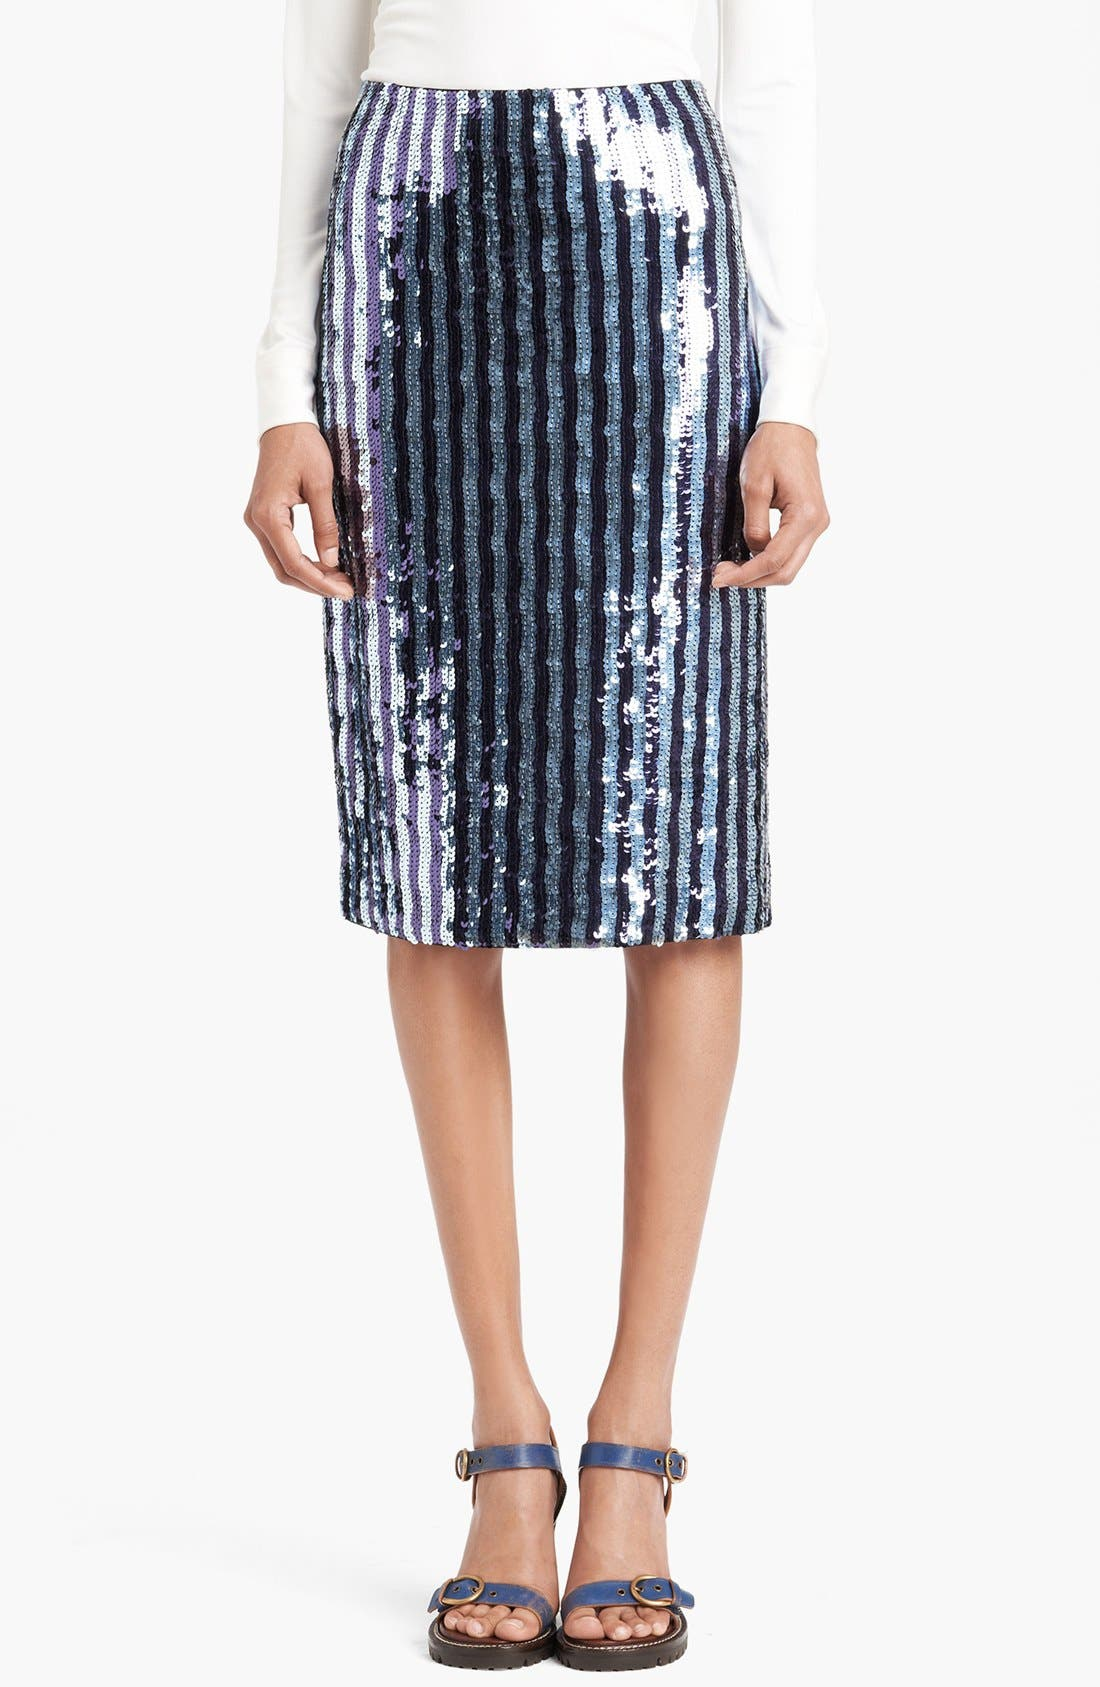 Alternate Image 1 Selected - MARC JACOBS Sequin Pencil Skirt